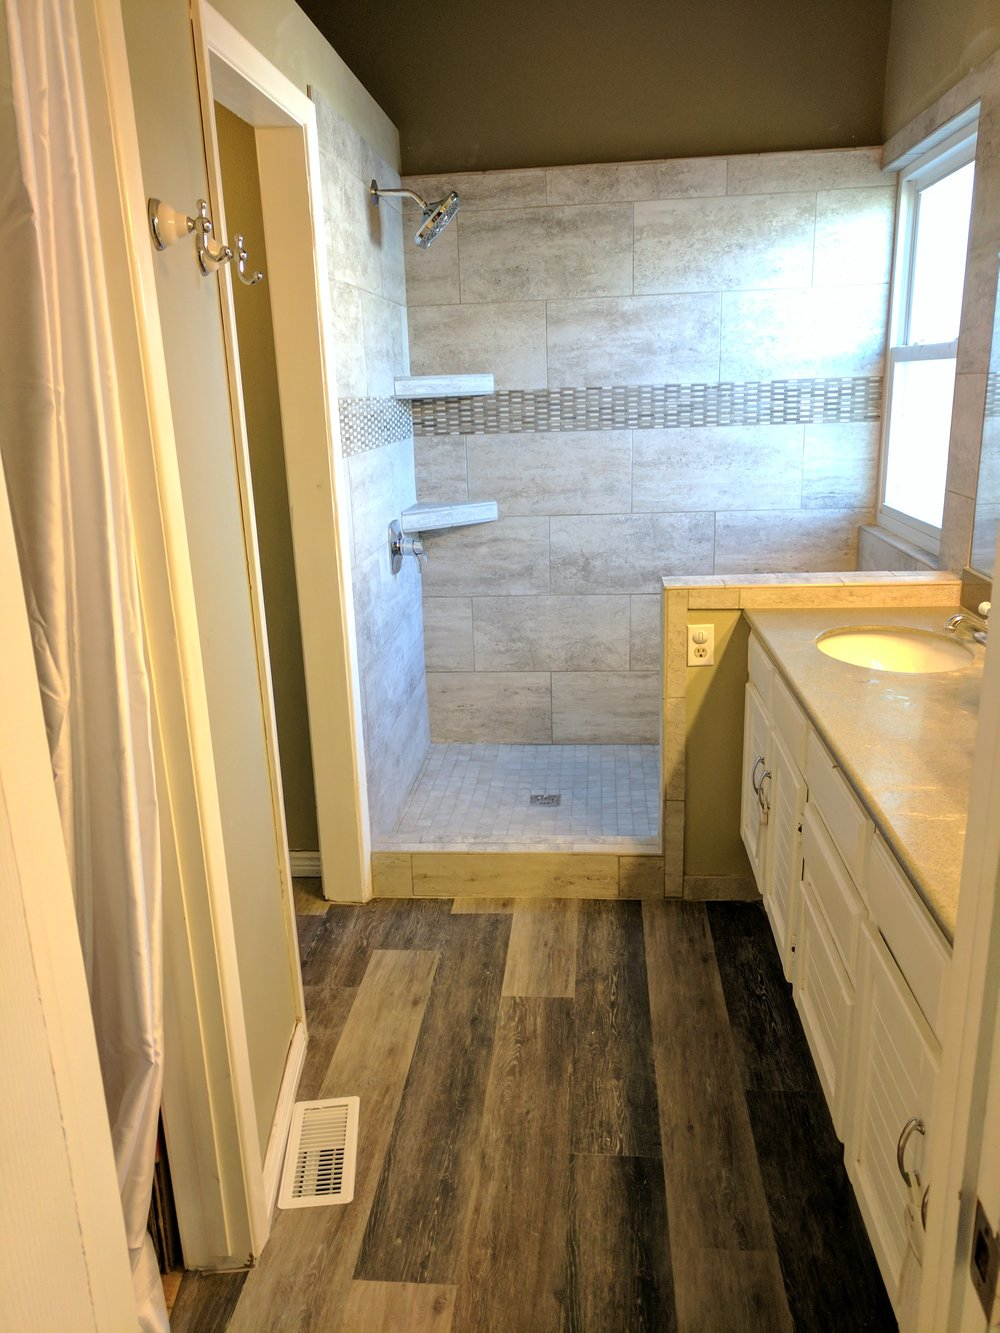 Photos were not used for MLS.  This was a consult for bathroom remodel before the house was listed.  I dressed the entry a bit, as there was nothing but a No Soliciting sign